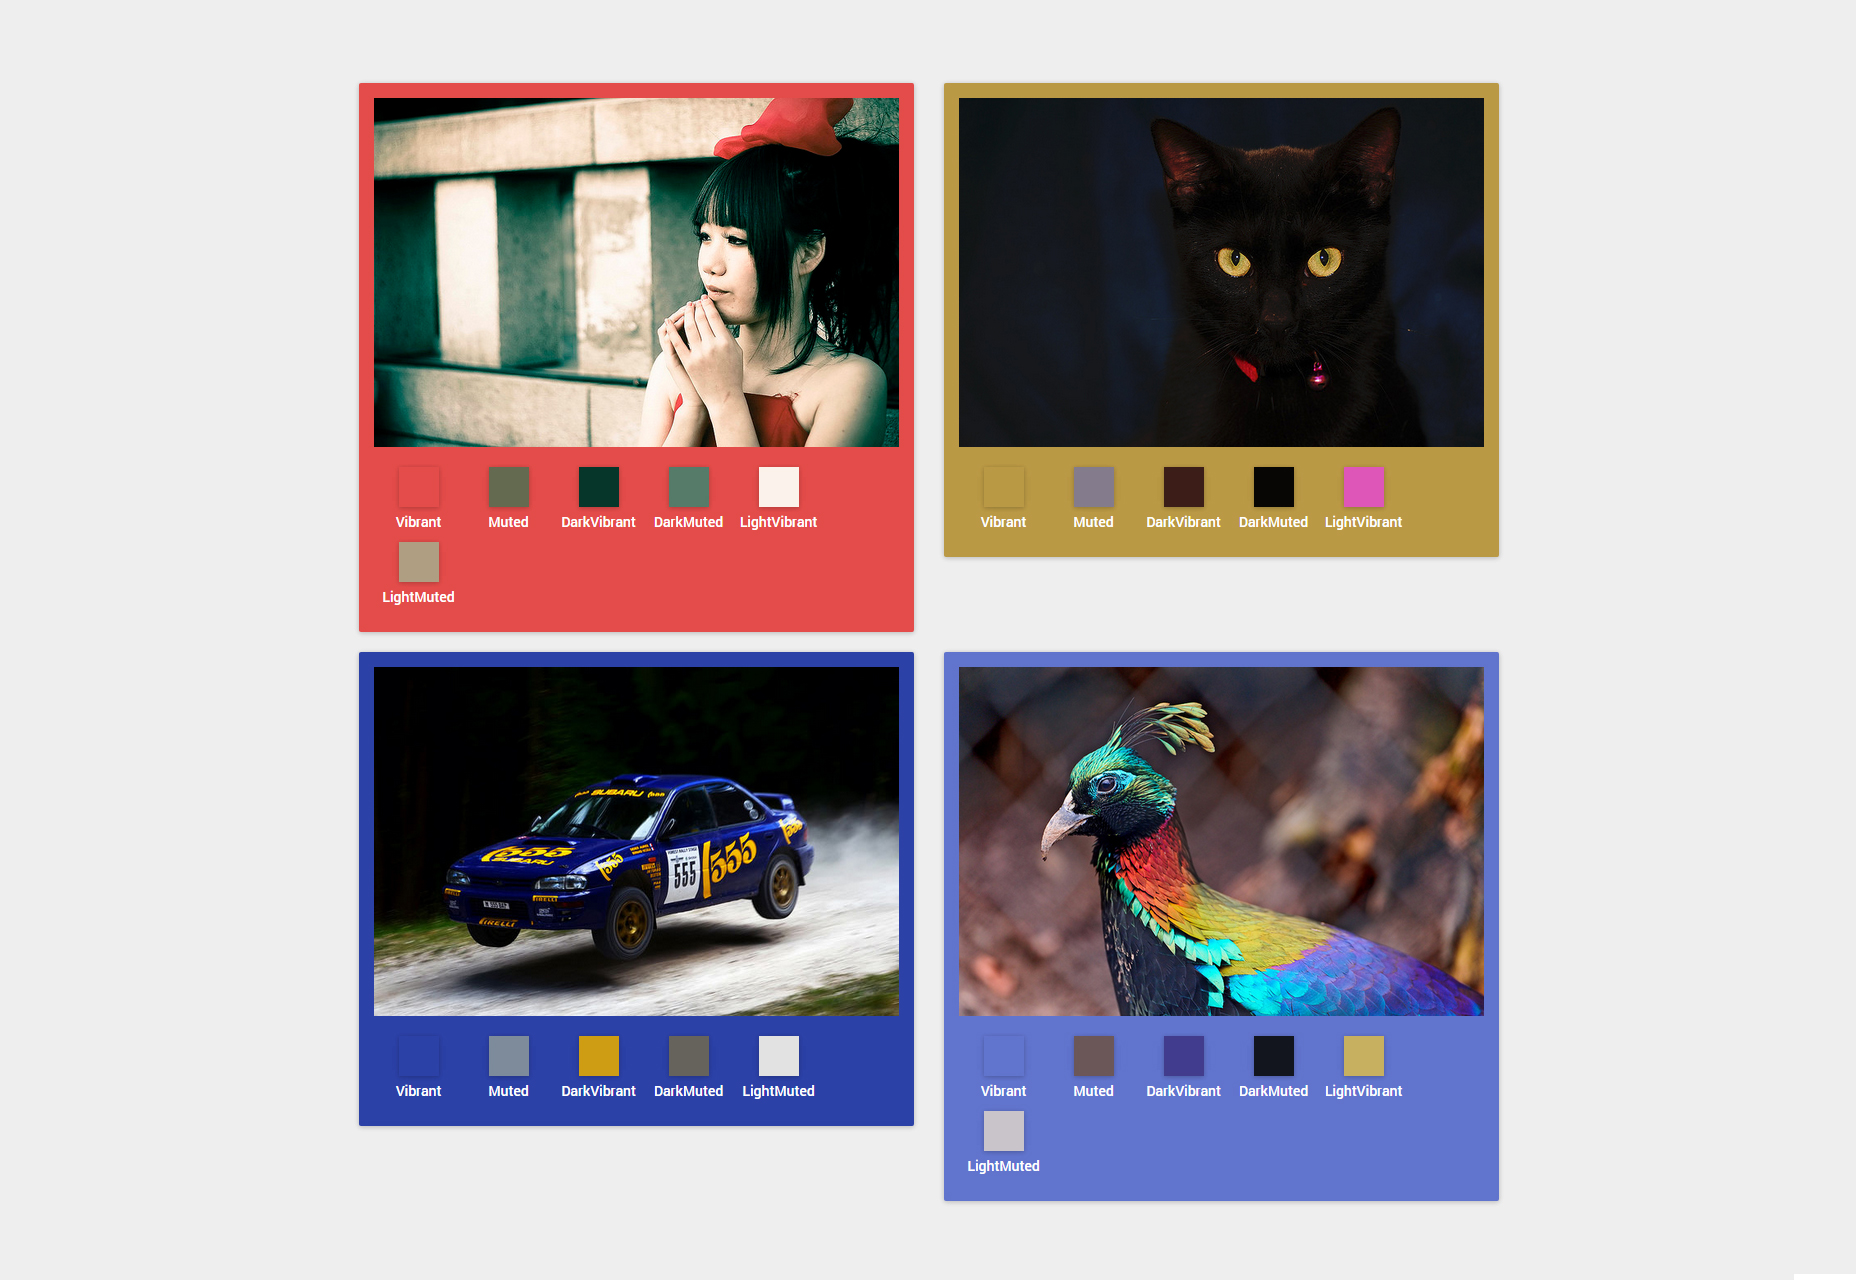 Vibrant.js: Prominent Image Colors JavaScript Extractor